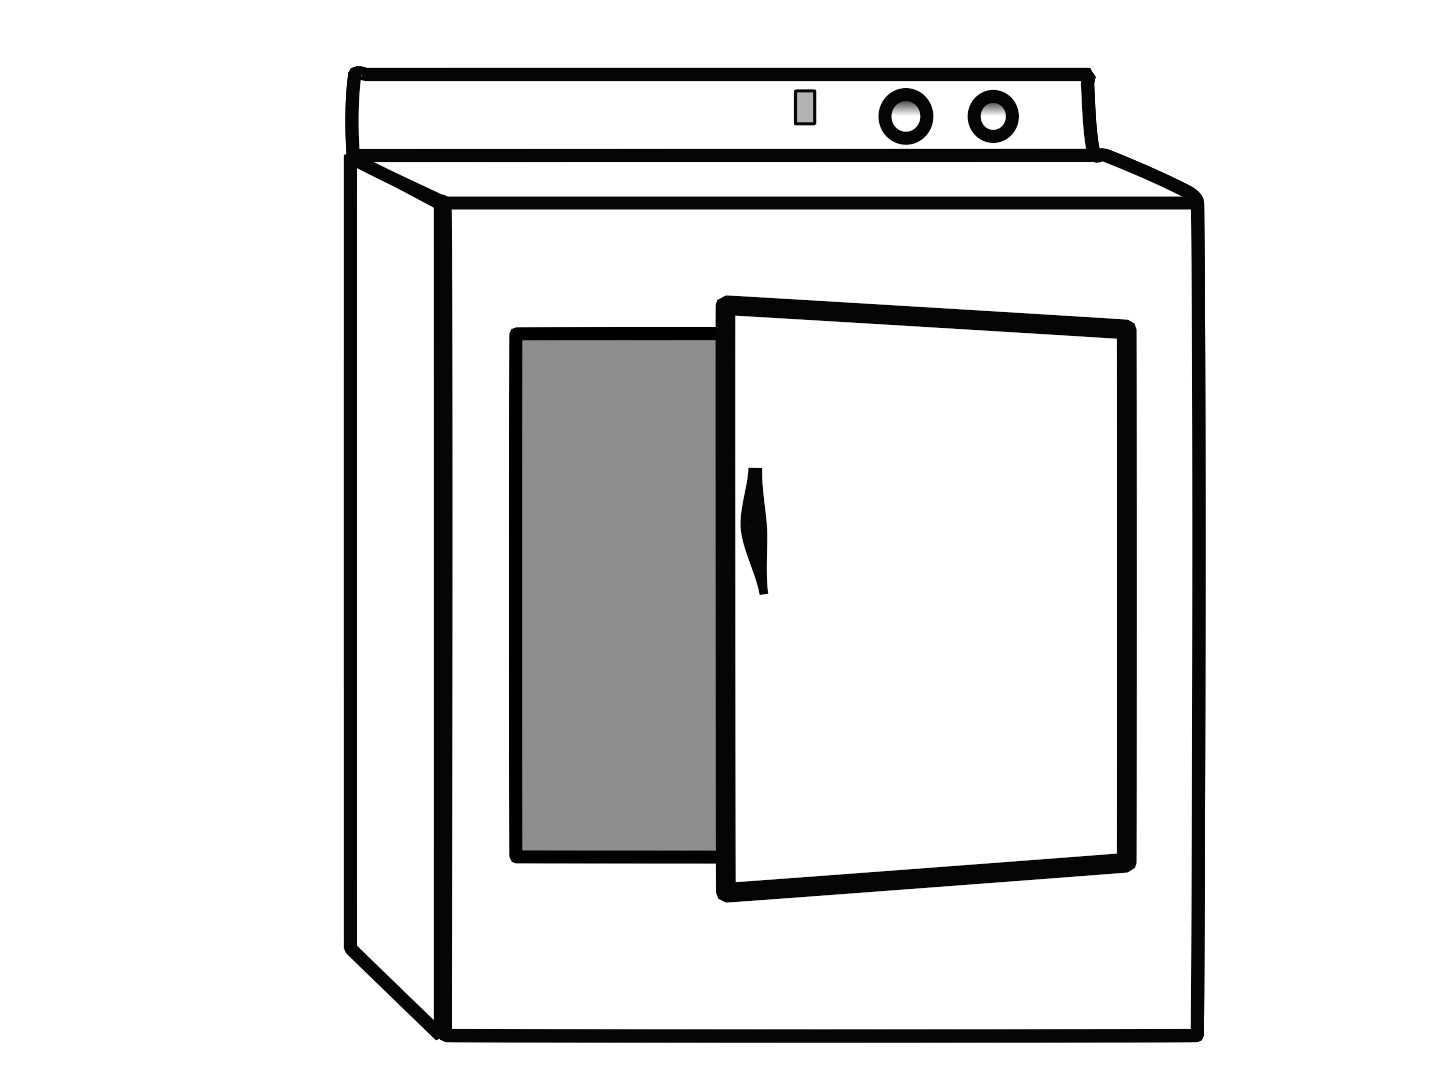 Clothes Dryer Clipart Dryer Door Is One Quarter Open